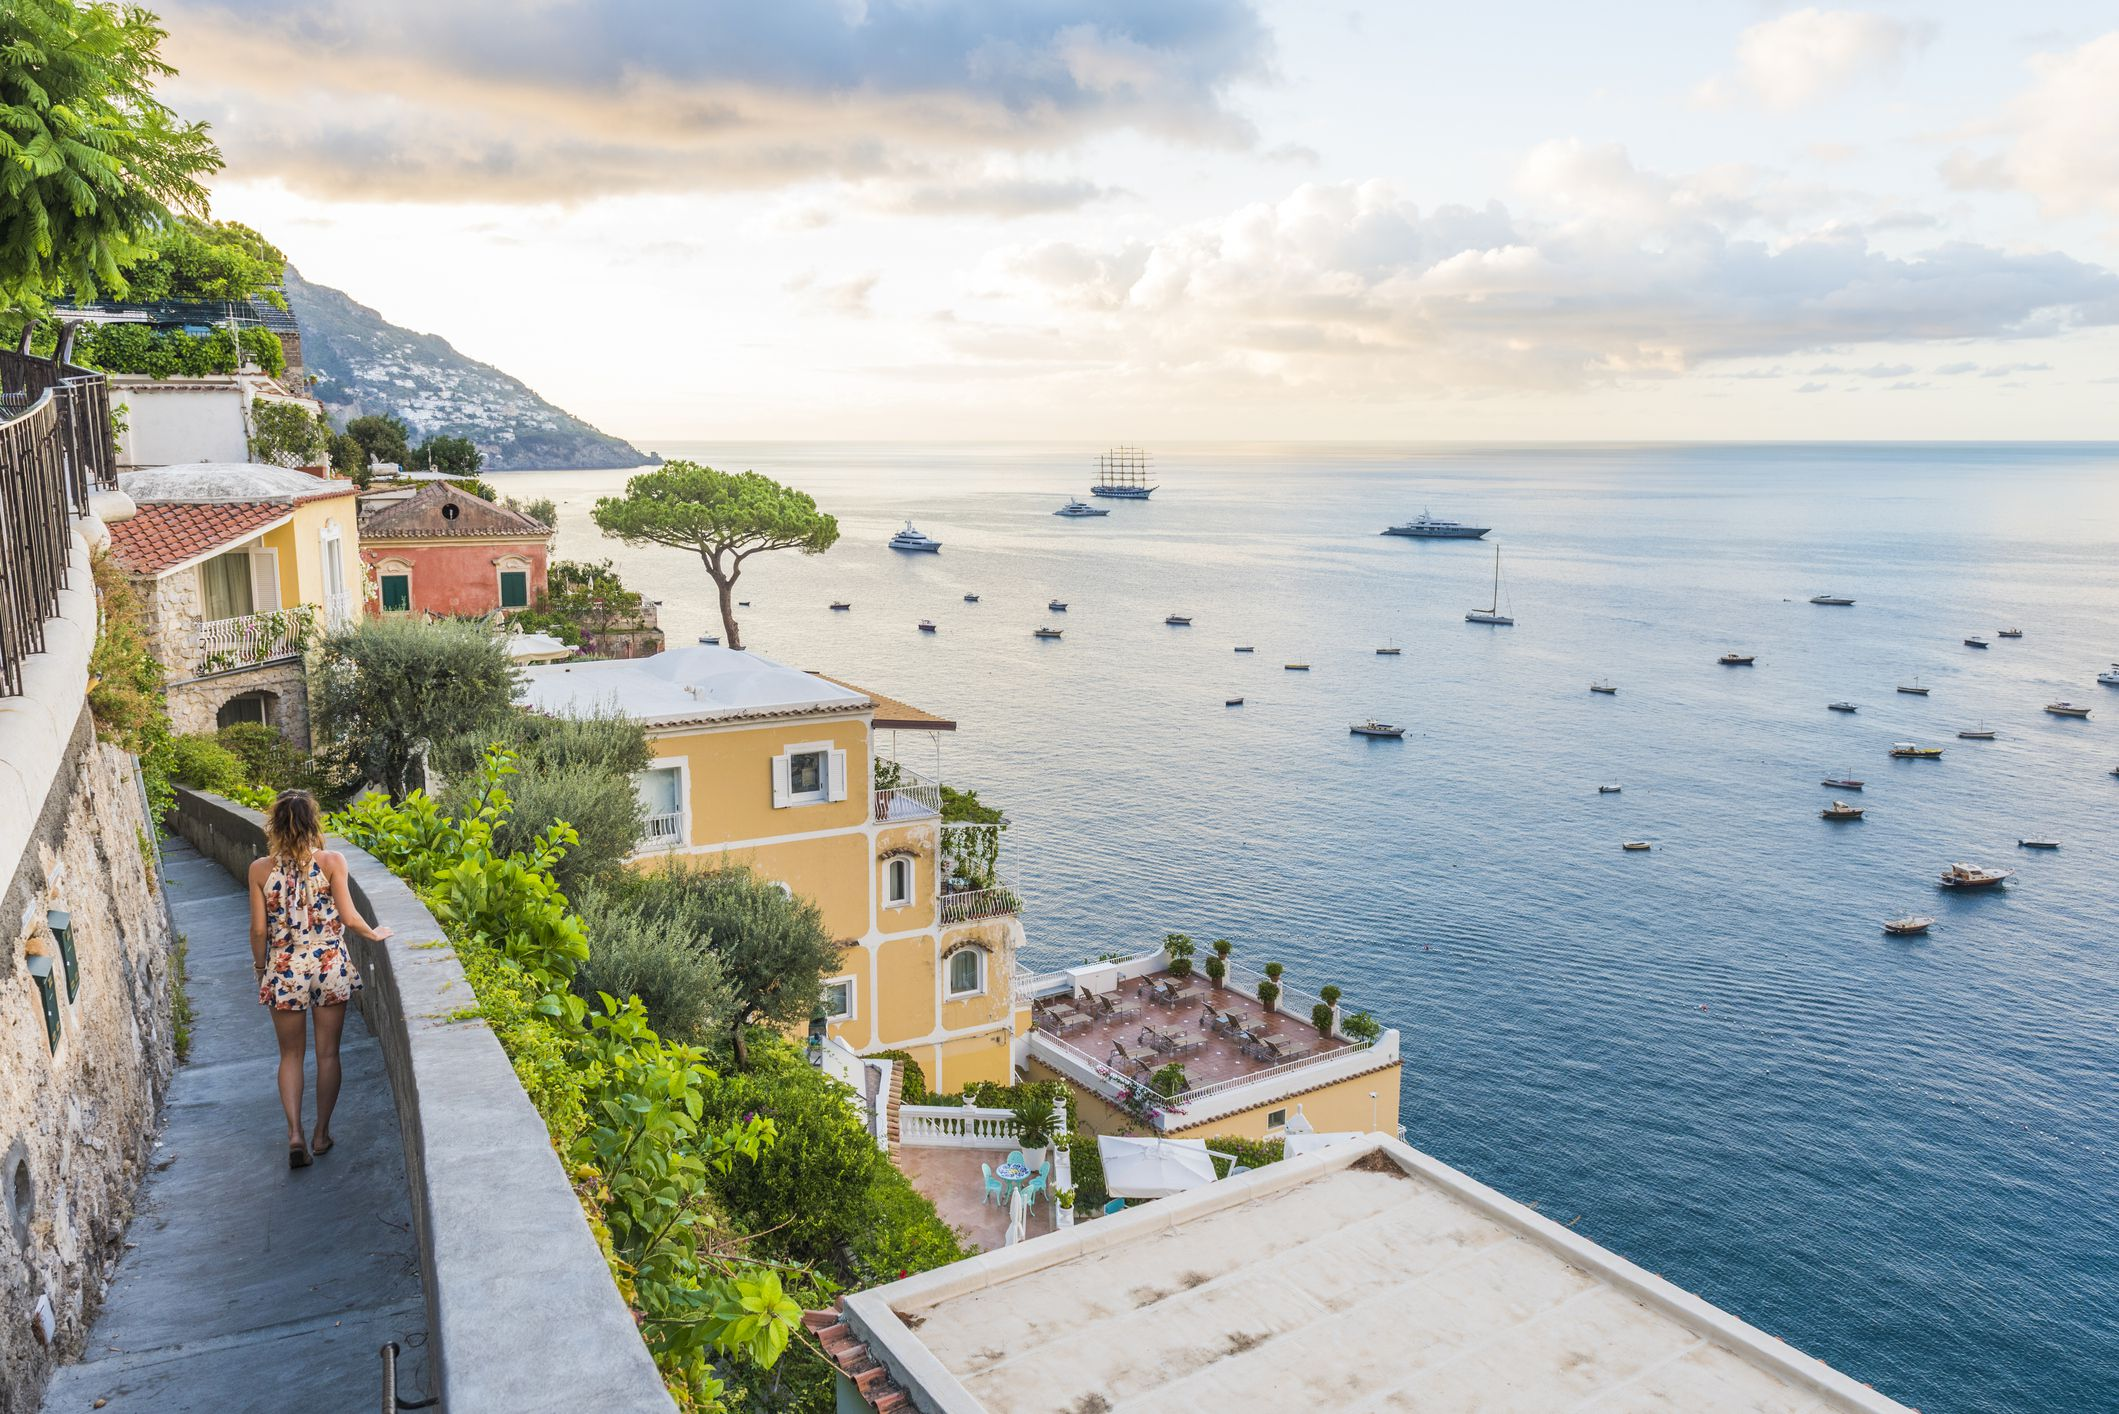 Best Amalfi Coast Tours of 2019